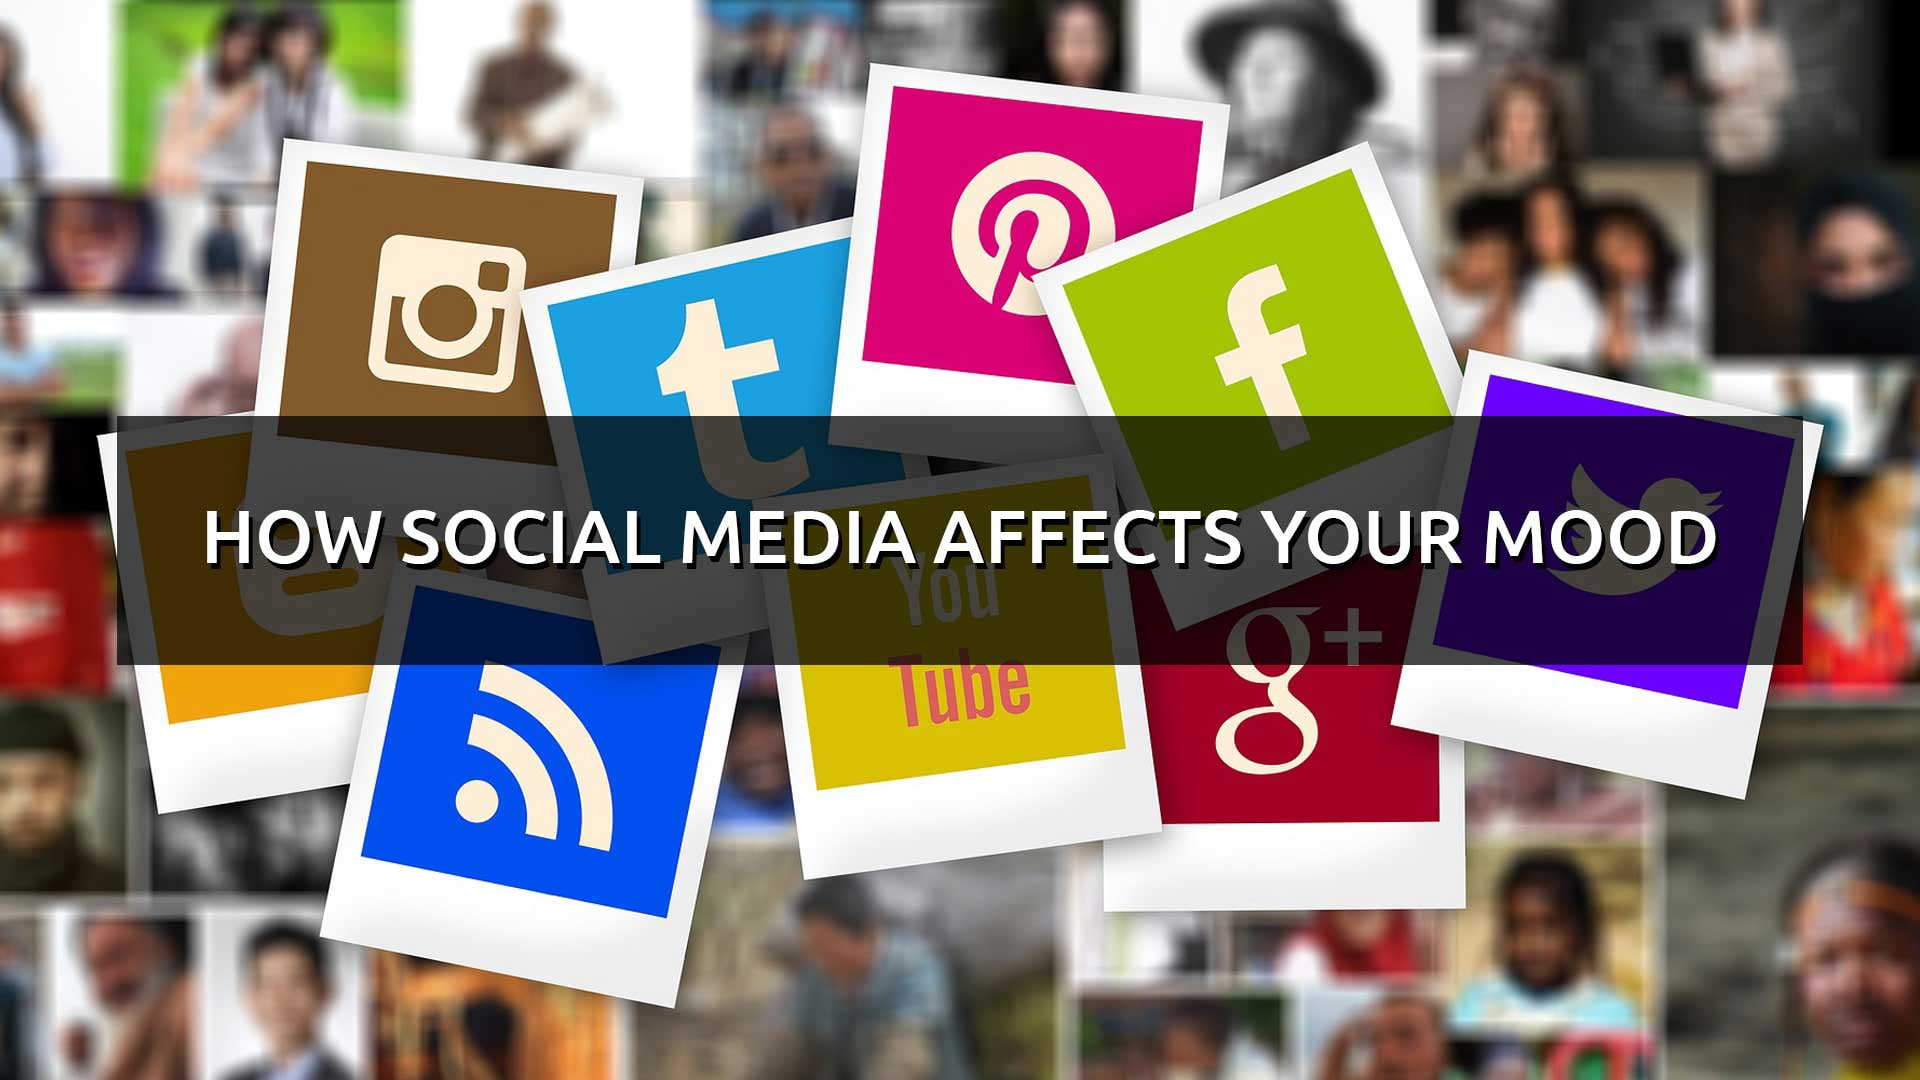 How Social Media Affects Your Mood